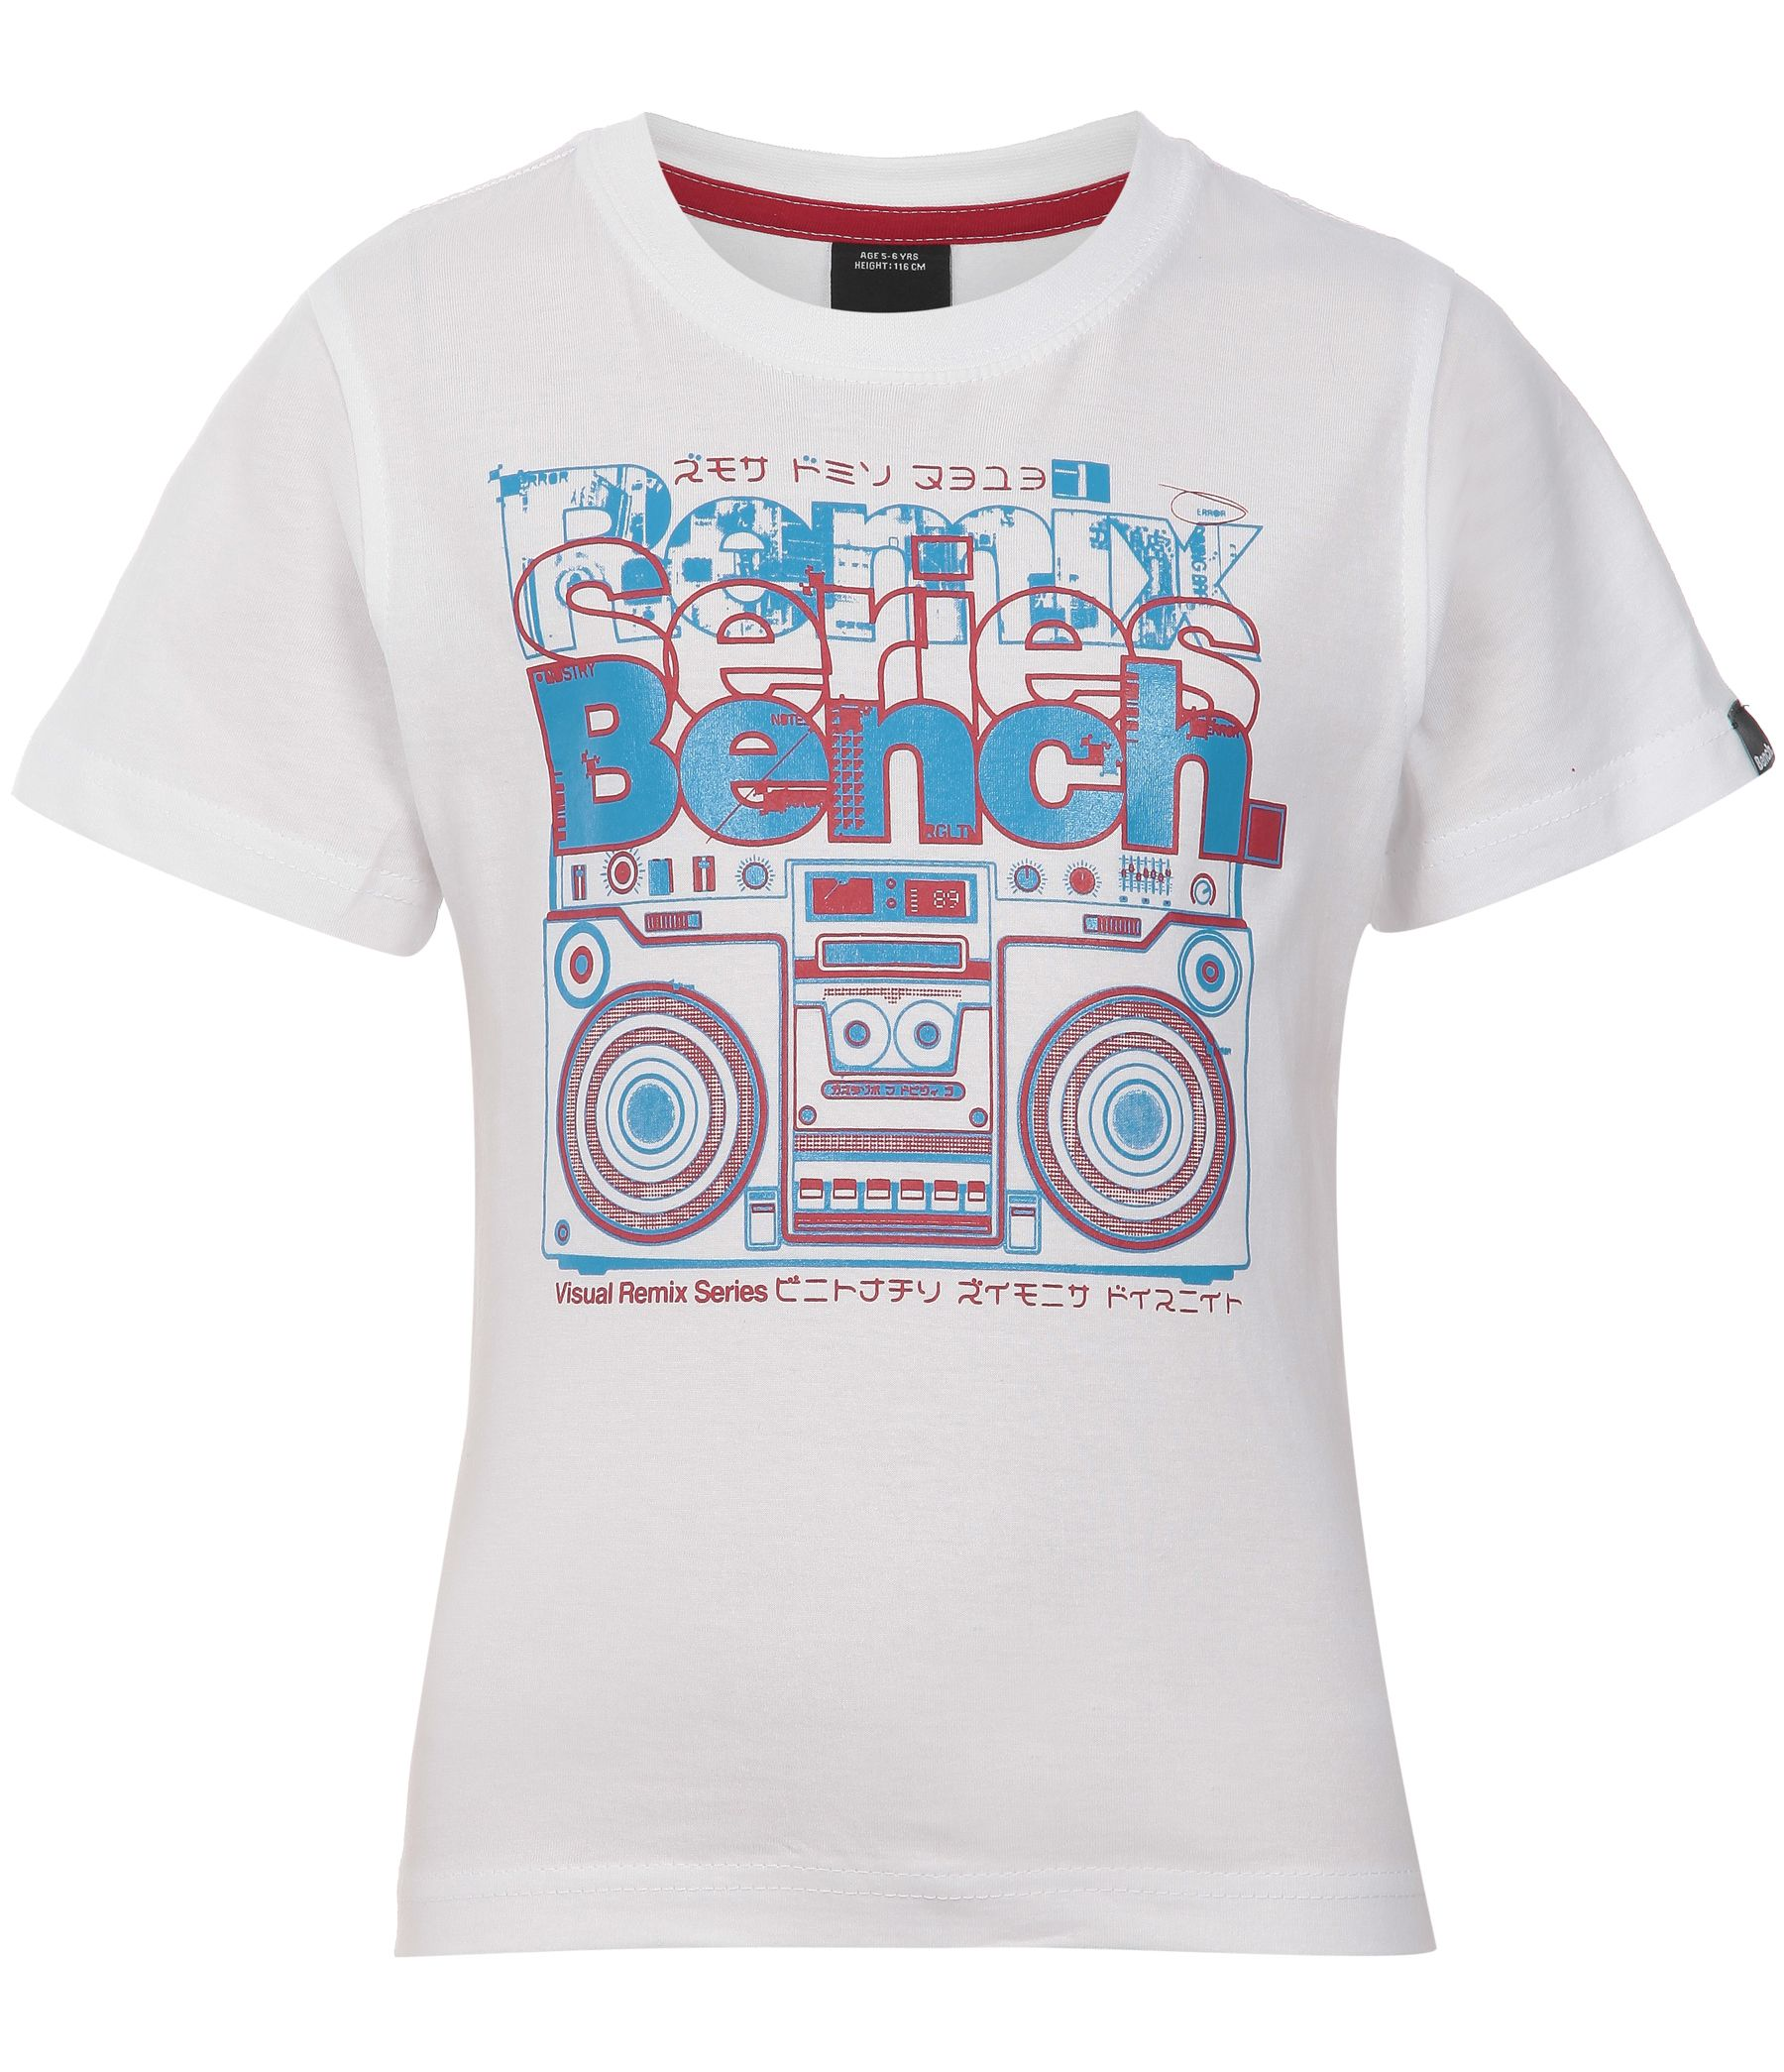 Childrens Bench Blaster t-shirt, White